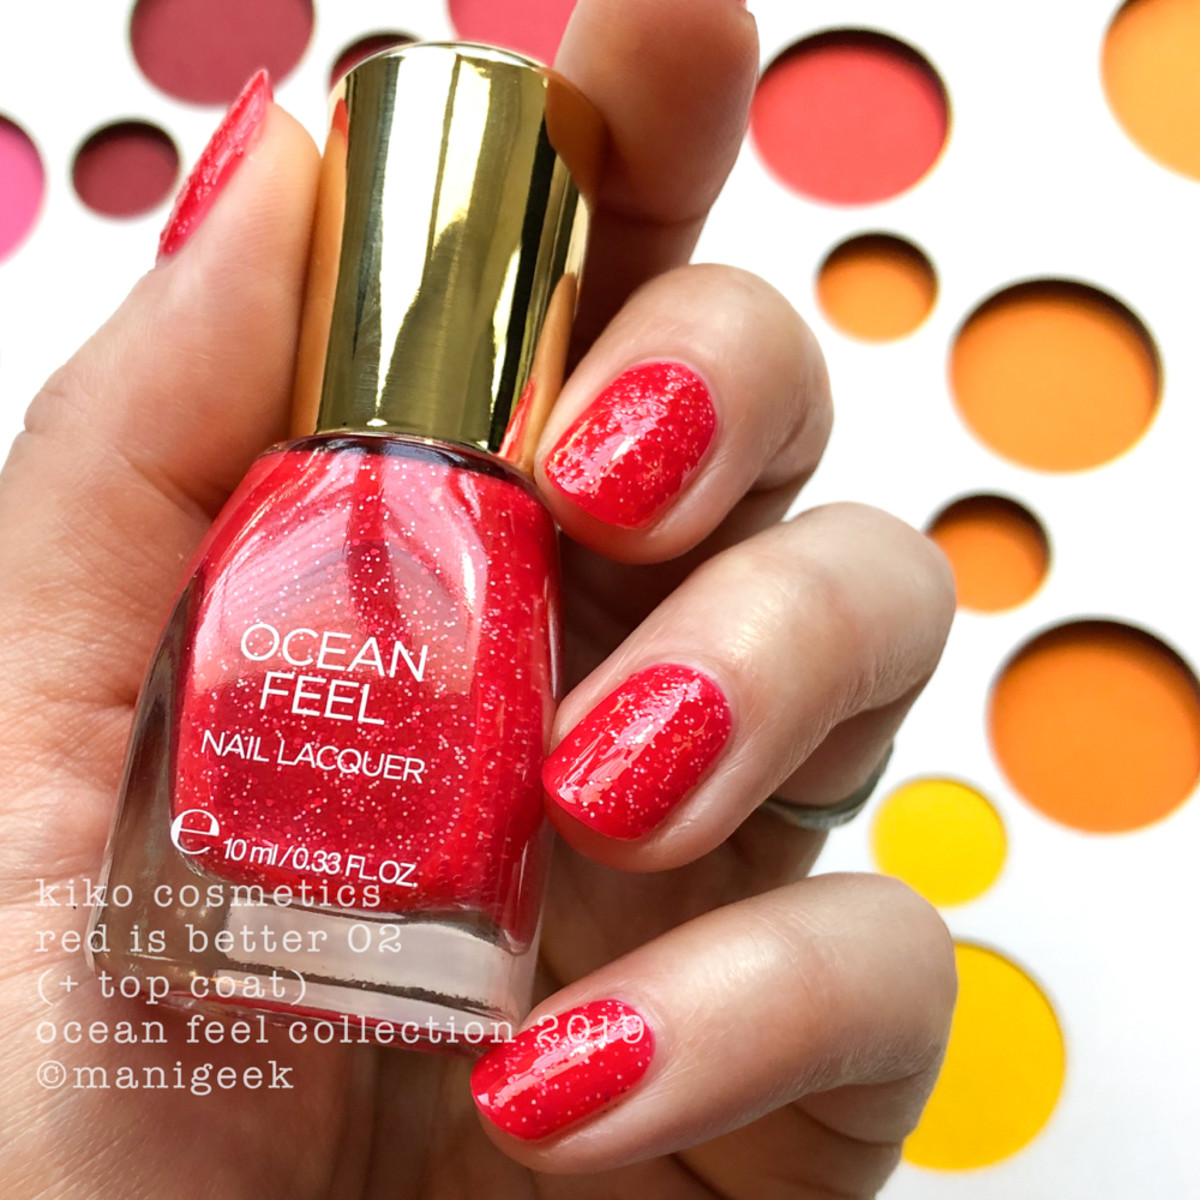 Kiko Red is Better 02 with Top - Ocean Feel Nail Lacquer 2019